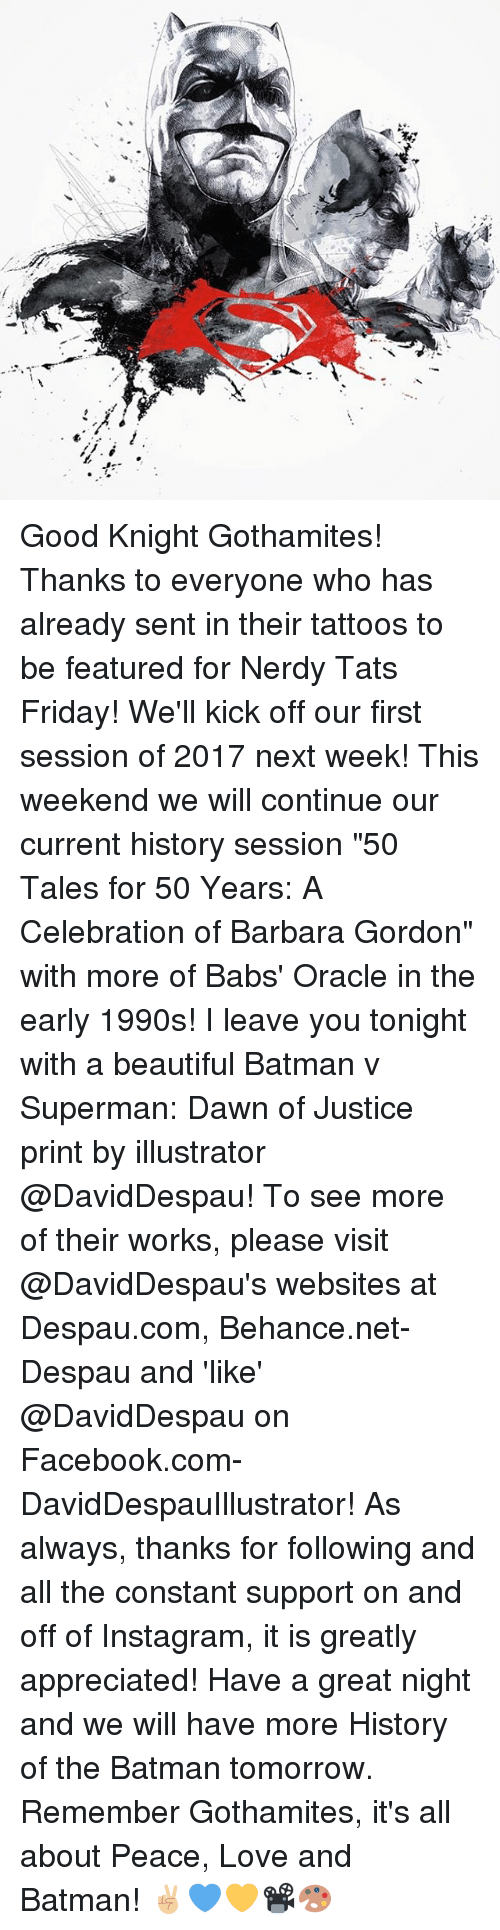 "Memes, Tattoos, and Batman v Superman: Dawn of Justice: 珊  나 Good Knight Gothamites! Thanks to everyone who has already sent in their tattoos to be featured for Nerdy Tats Friday! We'll kick off our first session of 2017 next week! This weekend we will continue our current history session ""50 Tales for 50 Years: A Celebration of Barbara Gordon"" with more of Babs' Oracle in the early 1990s! I leave you tonight with a beautiful Batman v Superman: Dawn of Justice print by illustrator @DavidDespau! To see more of their works, please visit @DavidDespau's websites at Despau.com, Behance.net-Despau and 'like' @DavidDespau on Facebook.com-DavidDespauIllustrator! As always, thanks for following and all the constant support on and off of Instagram, it is greatly appreciated! Have a great night and we will have more History of the Batman tomorrow. Remember Gothamites, it's all about Peace, Love and Batman! ✌🏼️💙💛📽🎨"